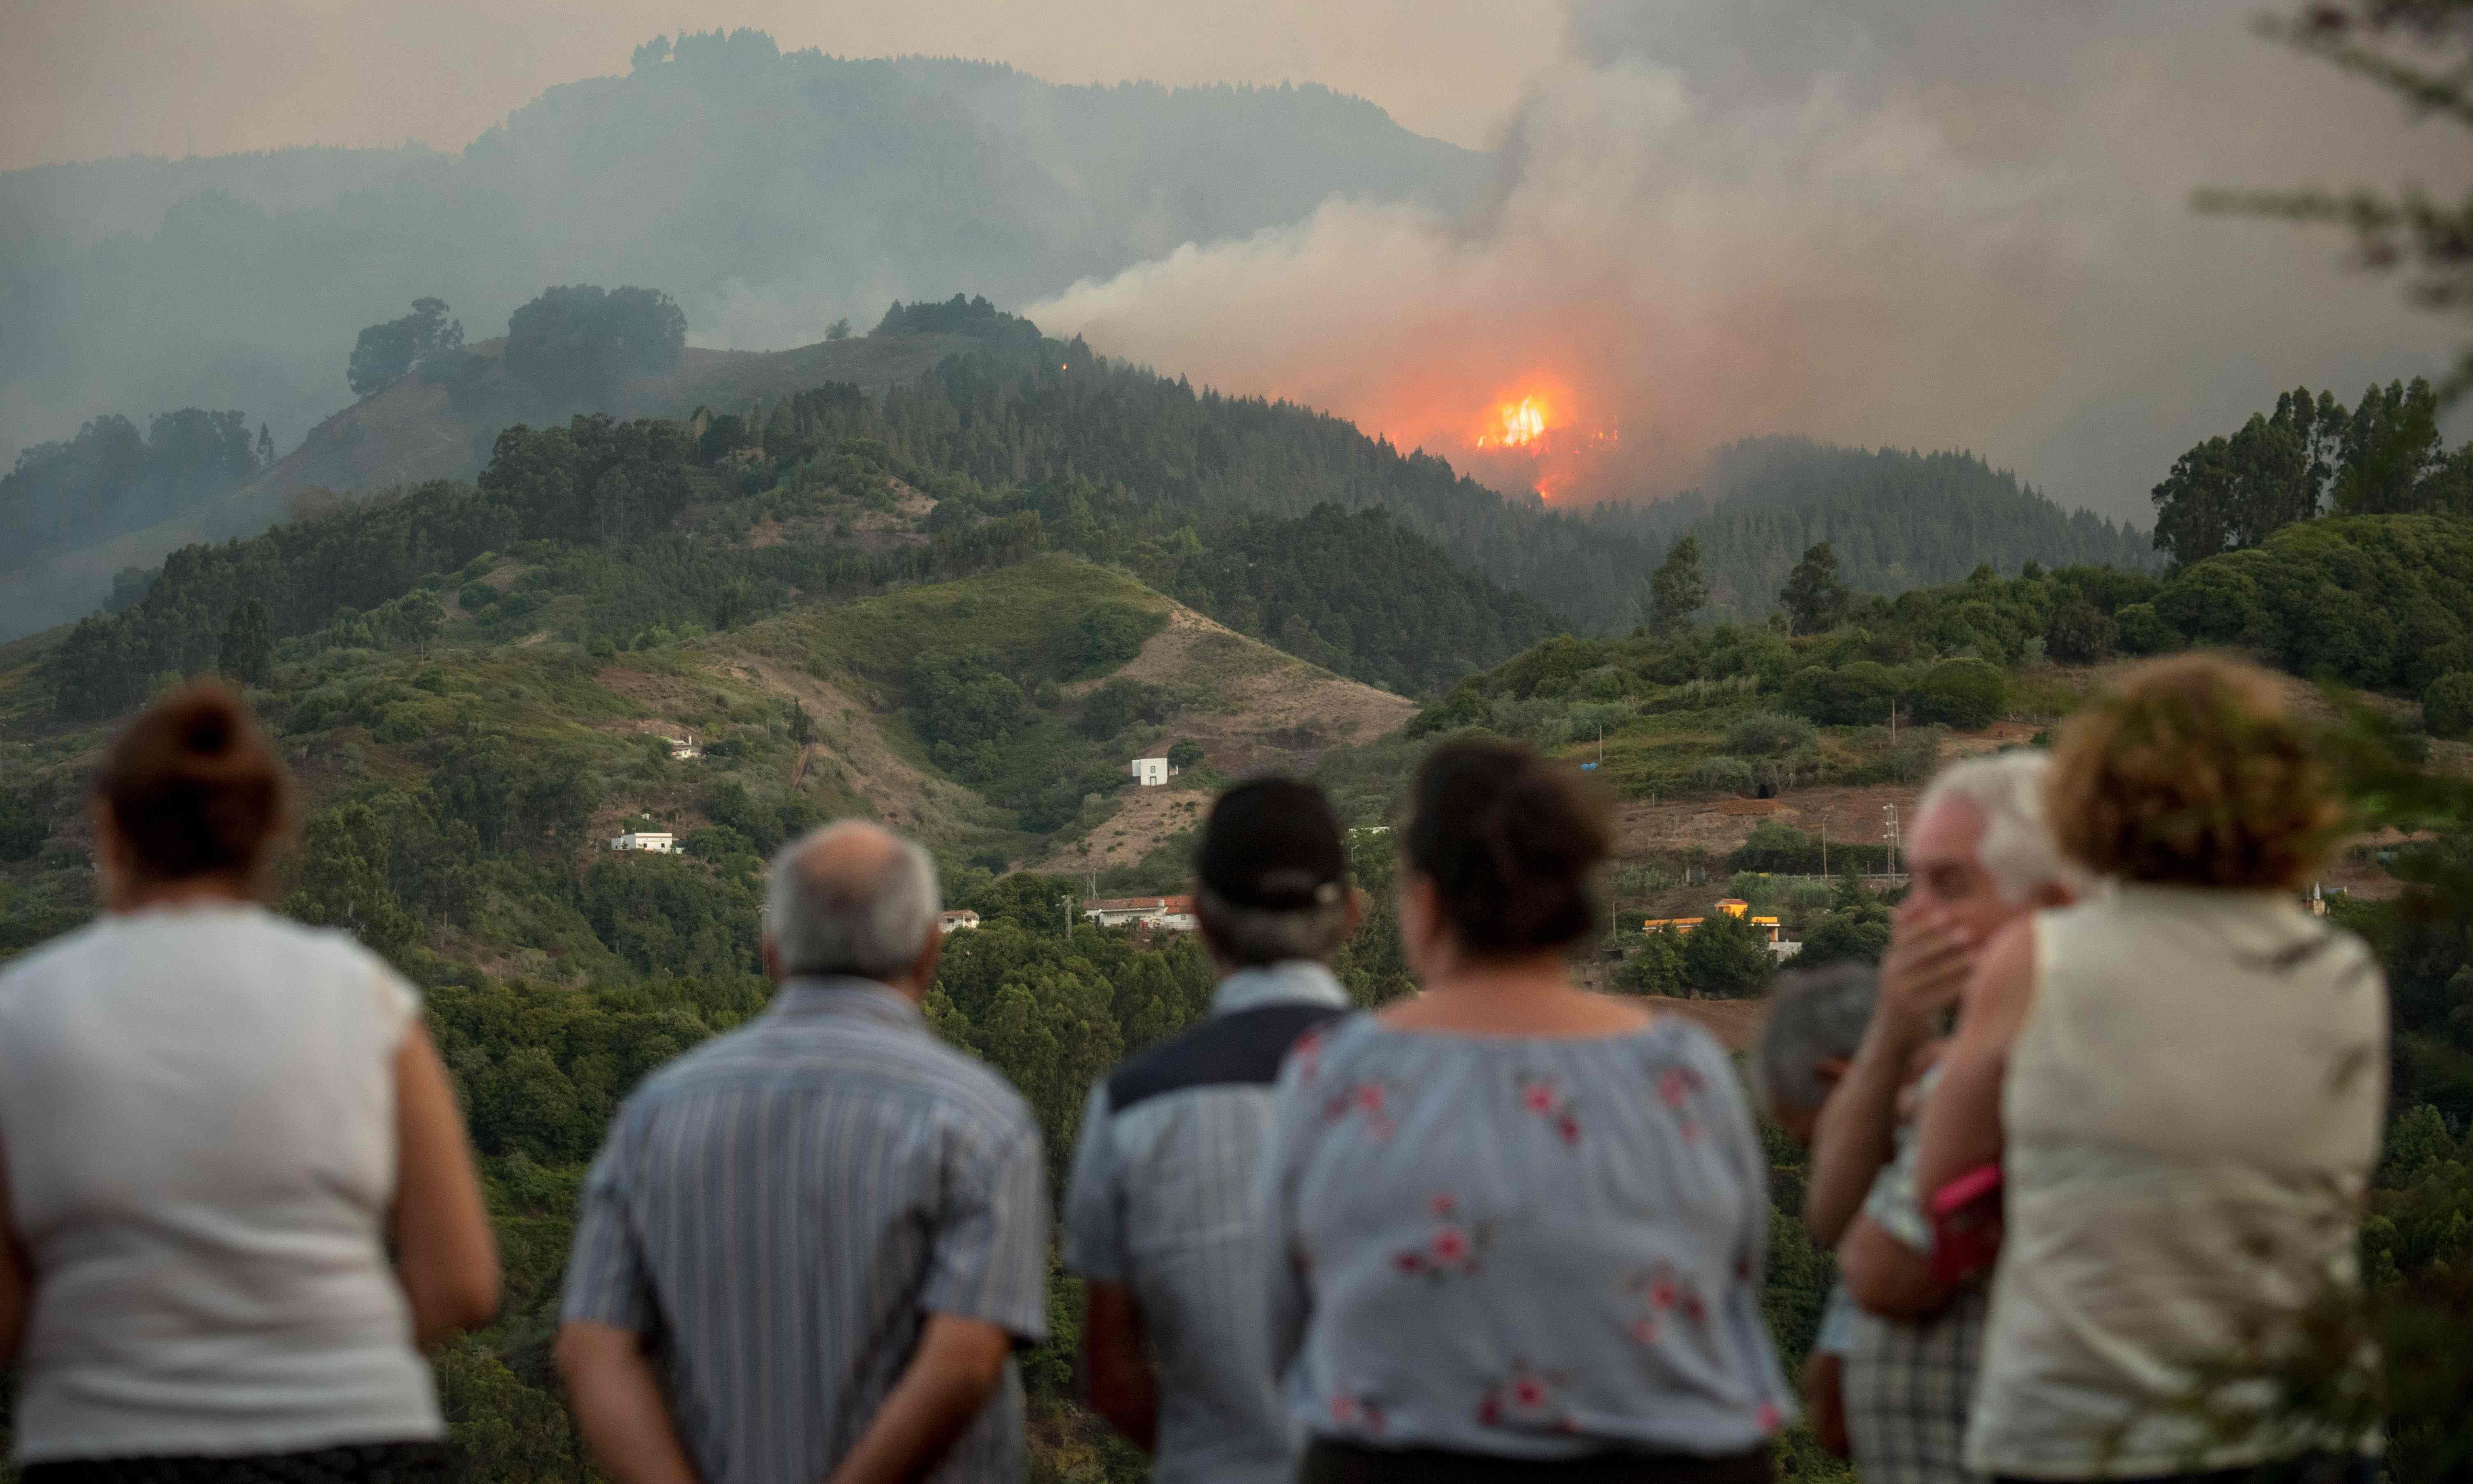 Gran Canaria wildfire triggers evacuation of thousands of people